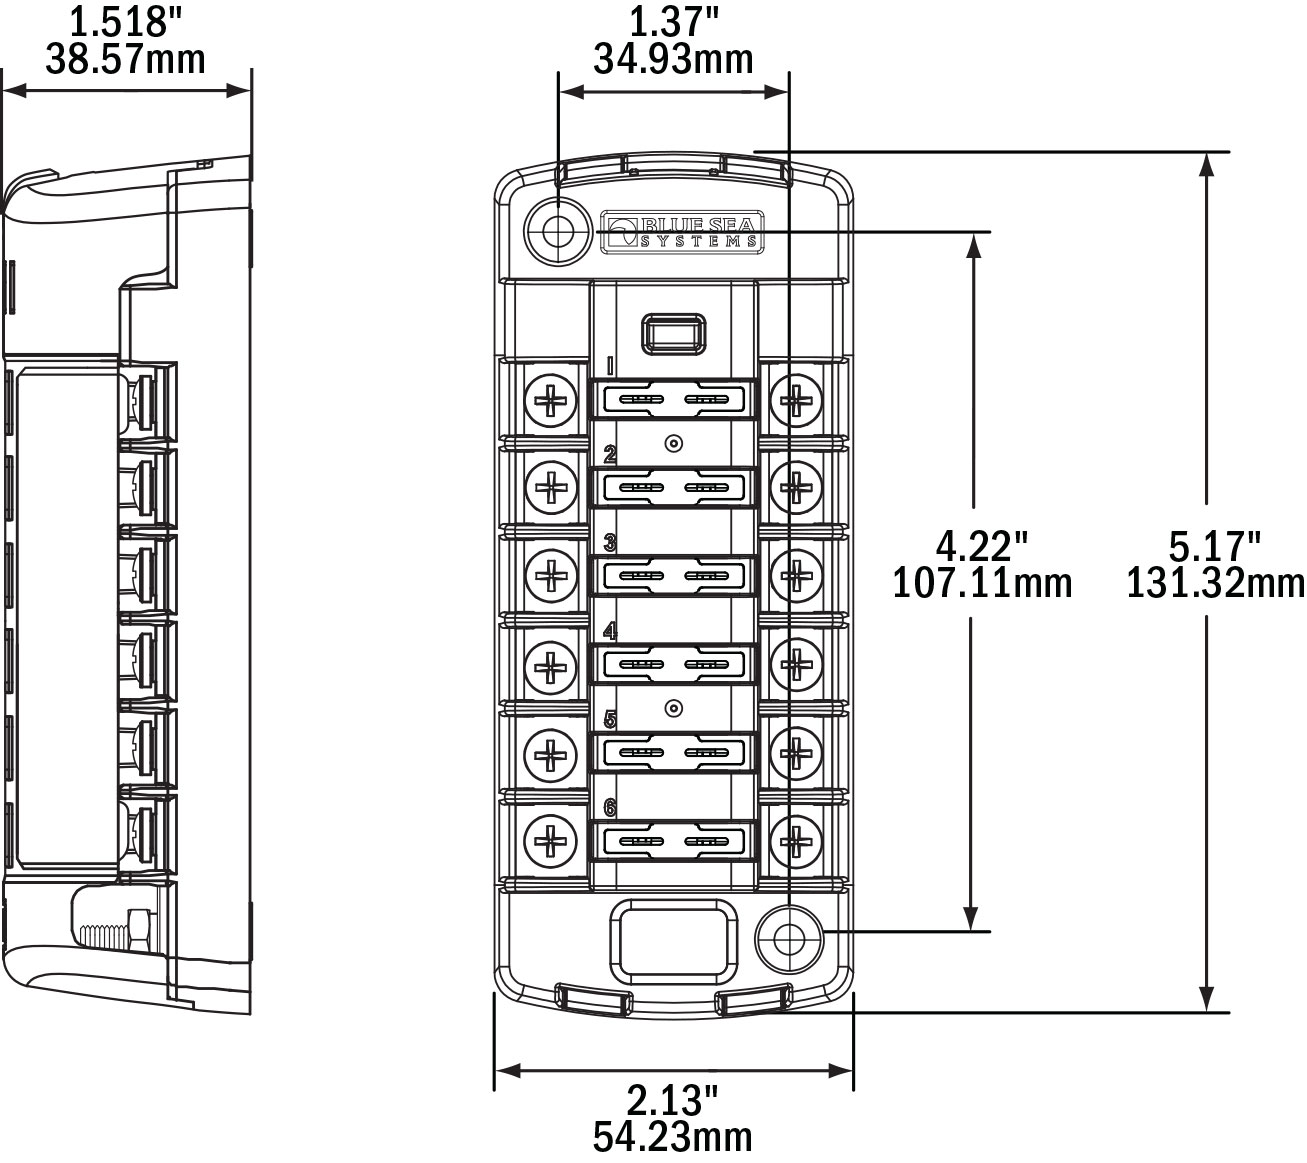 hight resolution of blue sea st blade fuse block bs5035 4x4overlander blue sea switch wiring diagram blue sea fuse block wiring diagram blue sea add a battery